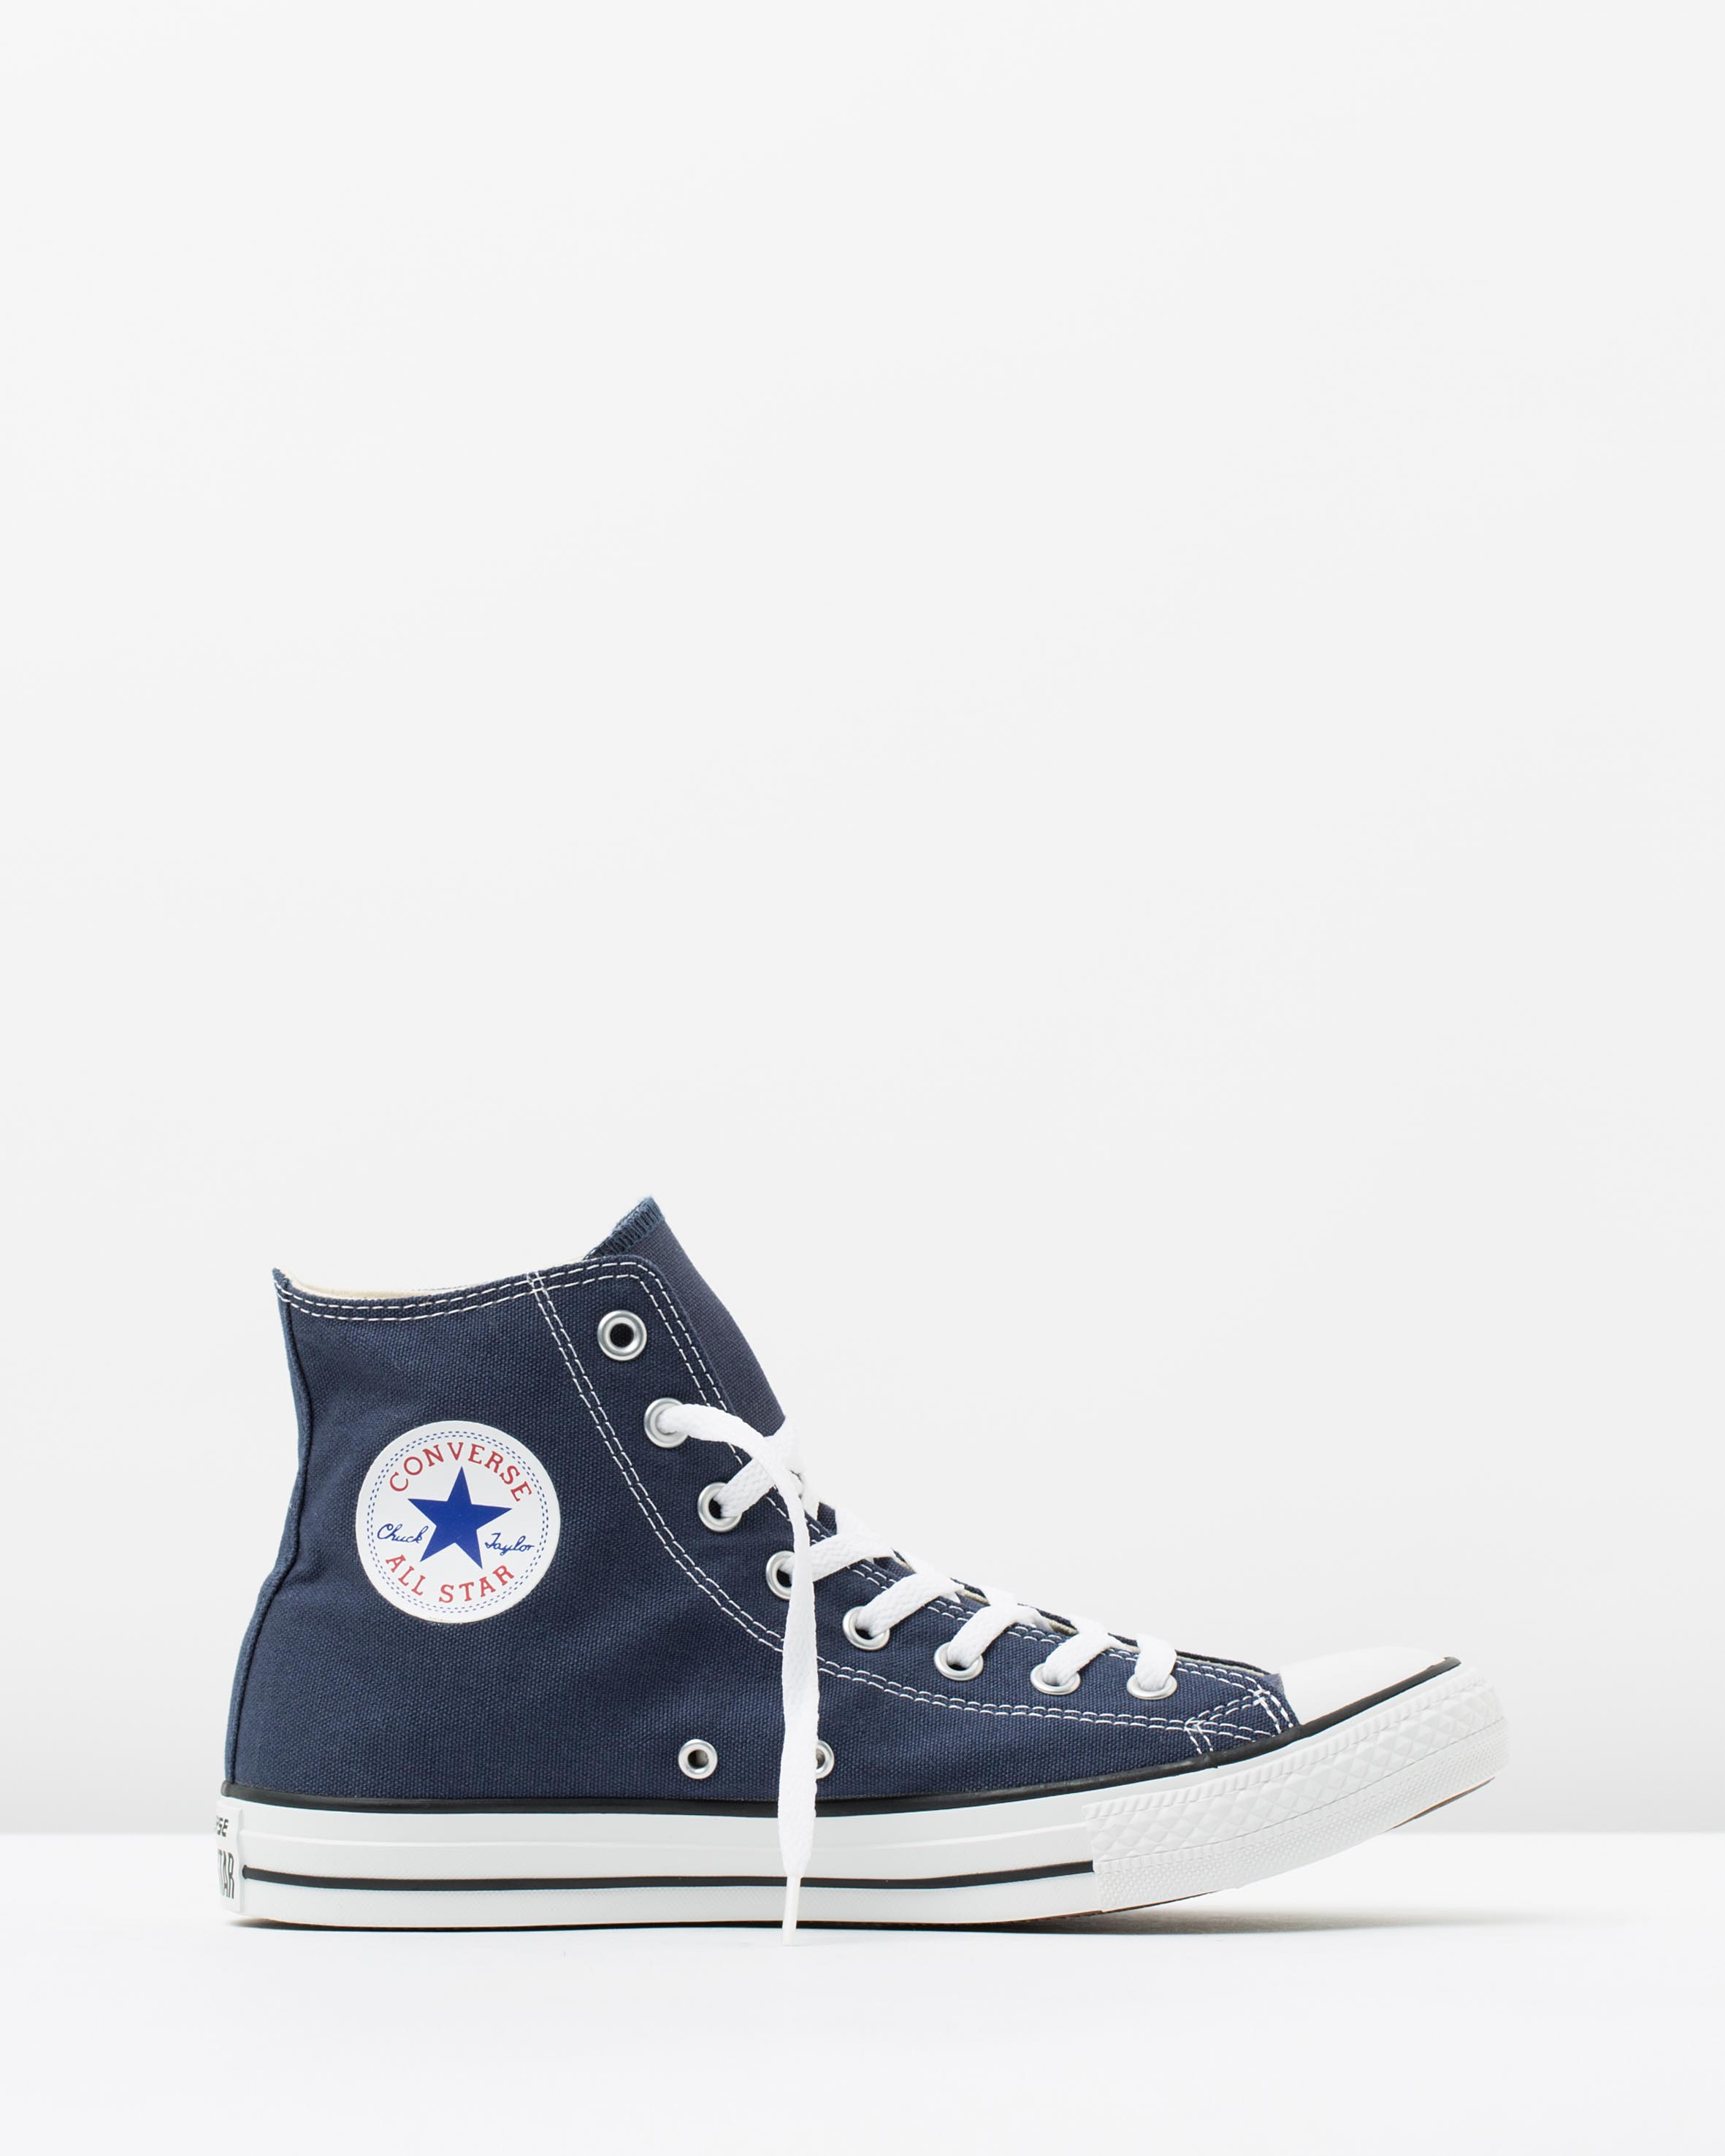 converse ct hi navy